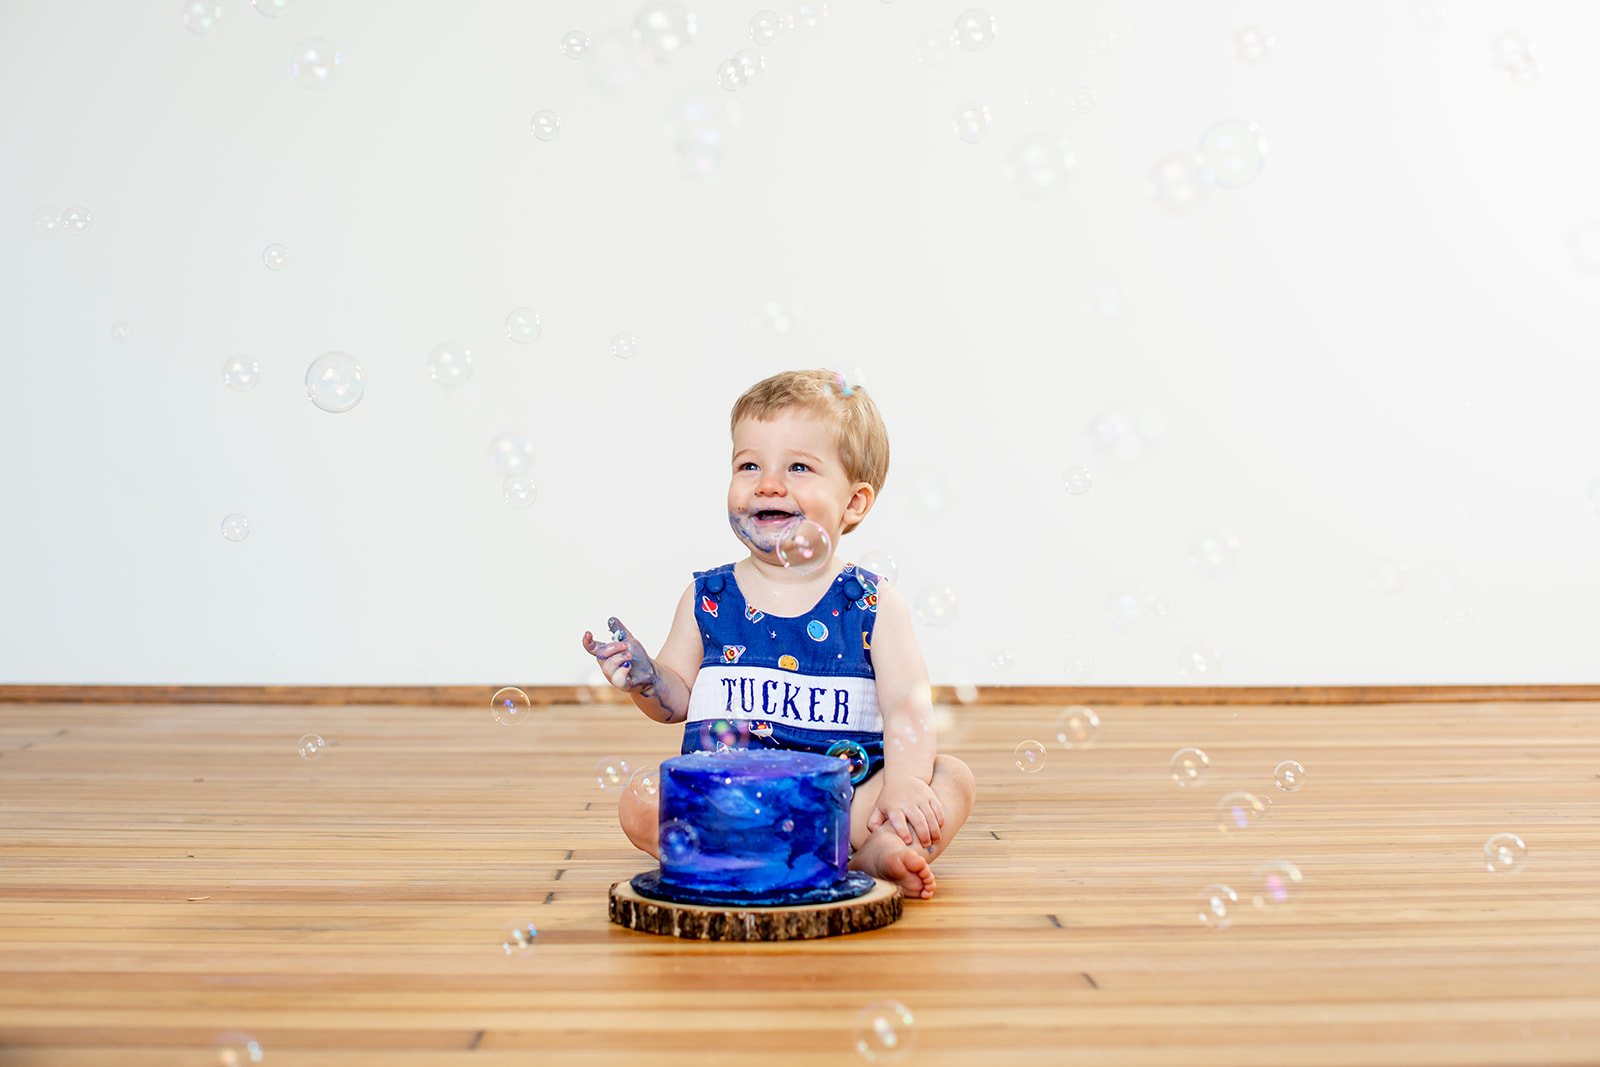 Tuckers First Birthday Cake Smash Photo Shoot - Image Property of www.j-dphoto.com